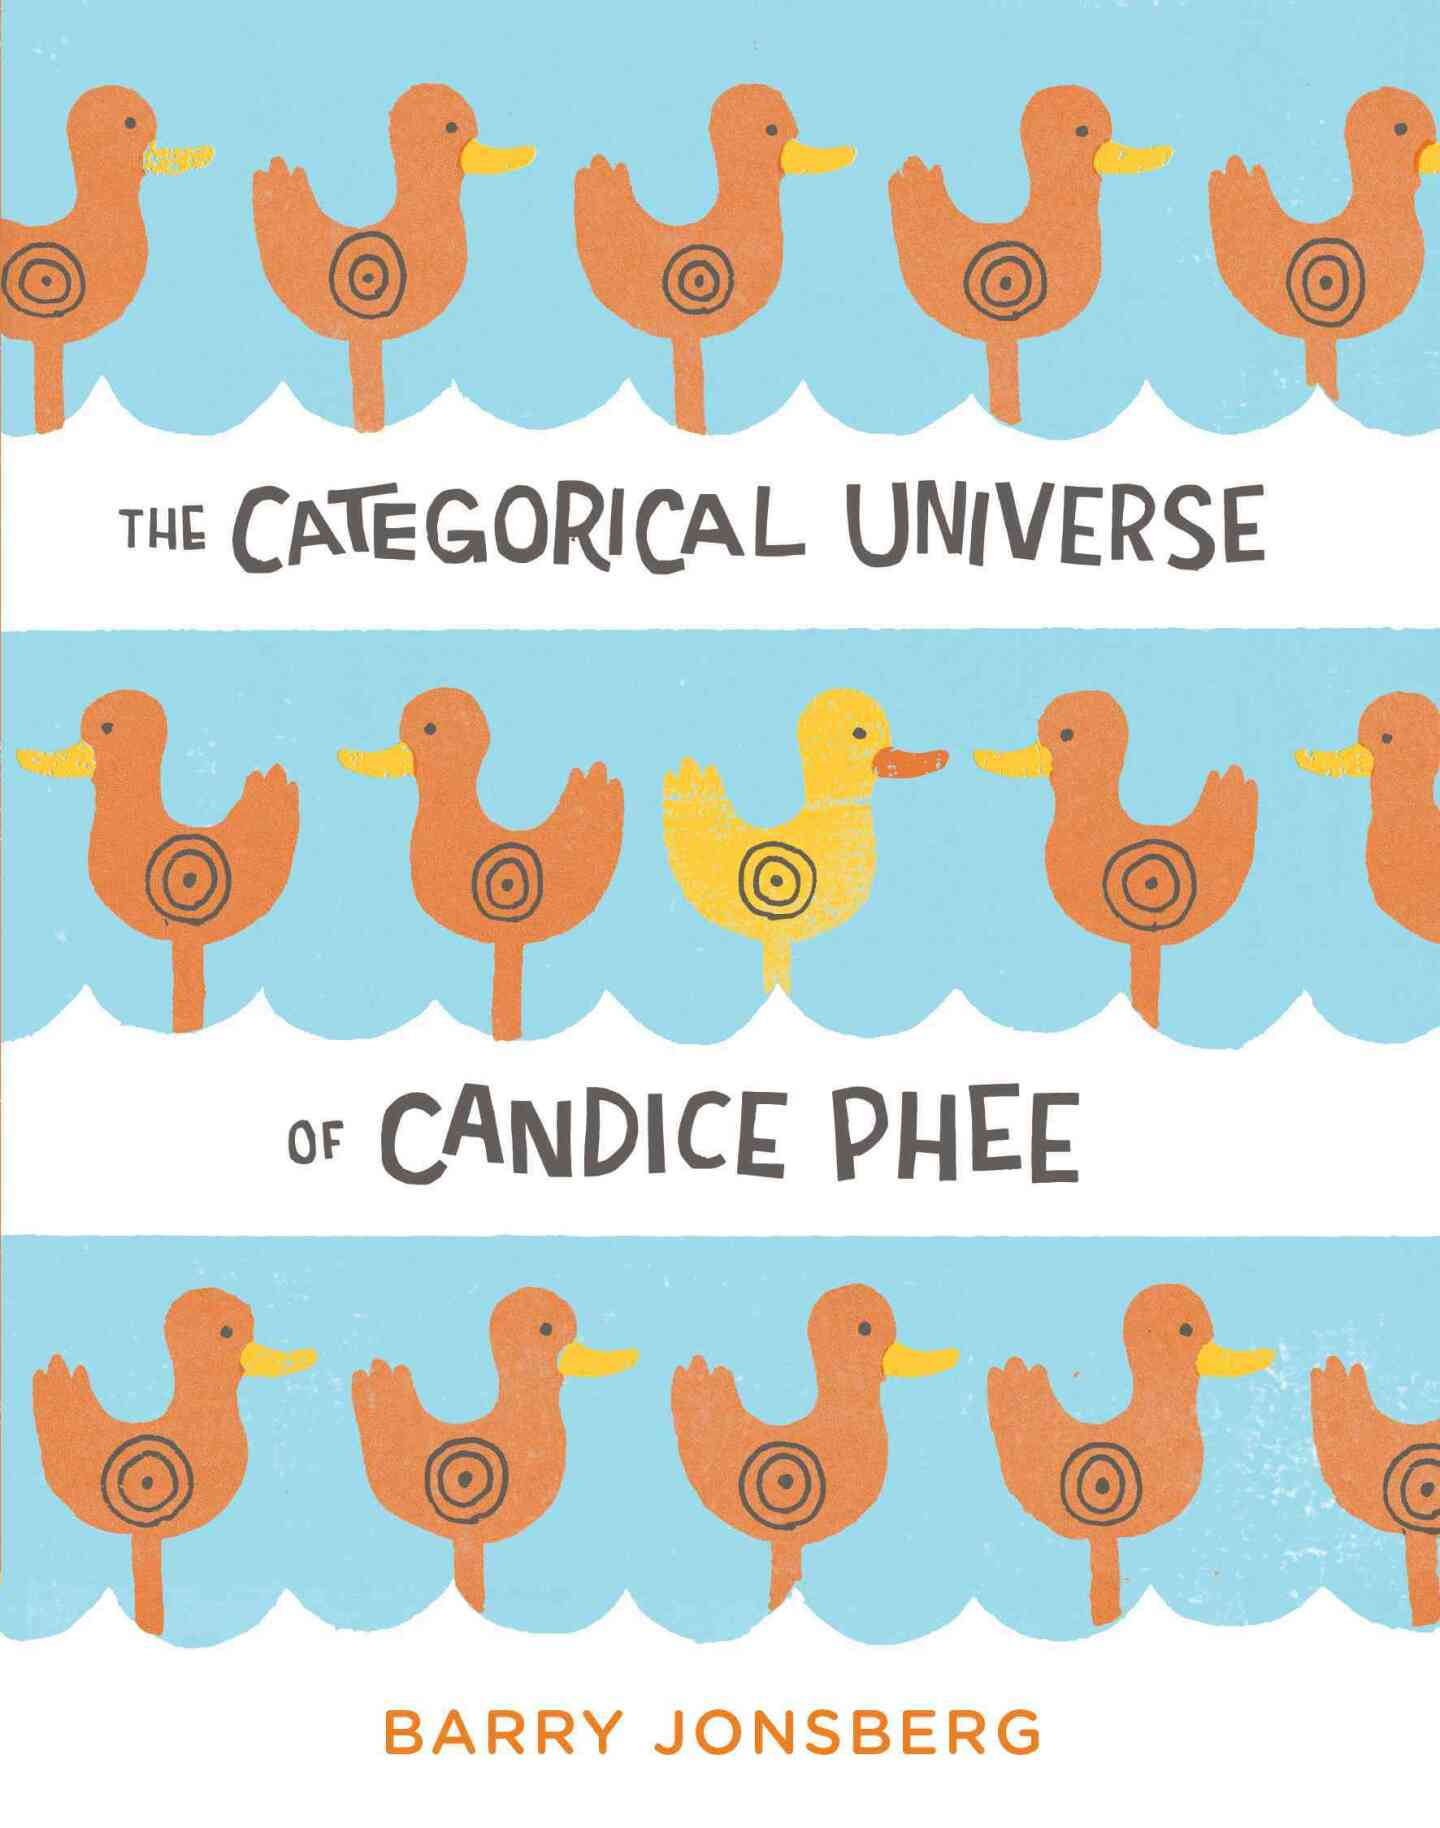 """Book cover of """"The Categorical Universe Of Candice Phee,"""" featuring rows of orange ducks over a blue and white background. One duck near the center is yellow."""